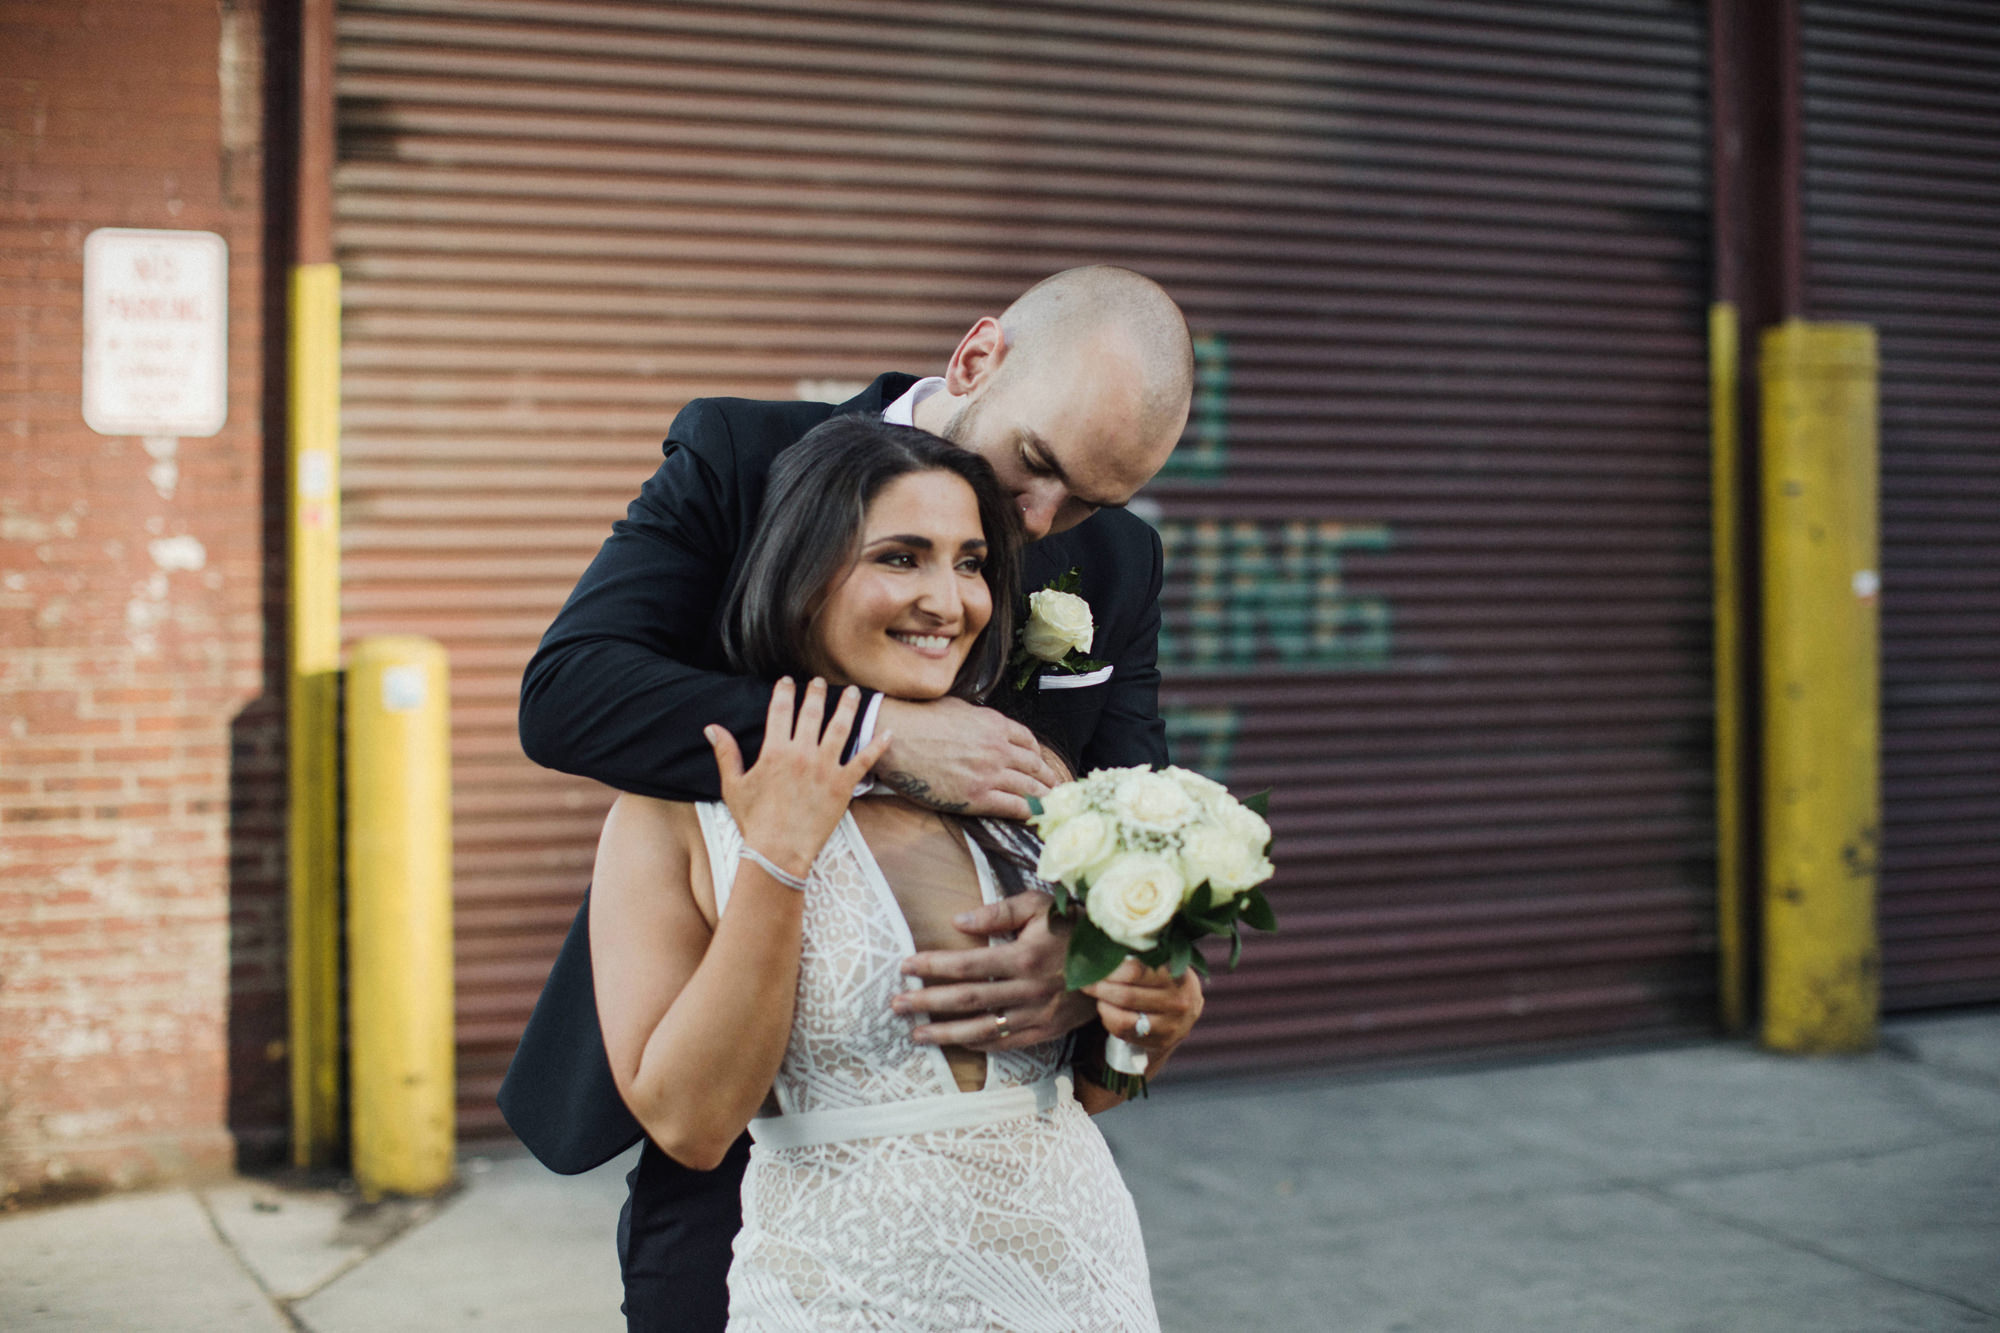 NYC_ELOPEMENT_CITYHALL_BROOKLYN_SAMMBLAKE_0040.jpg